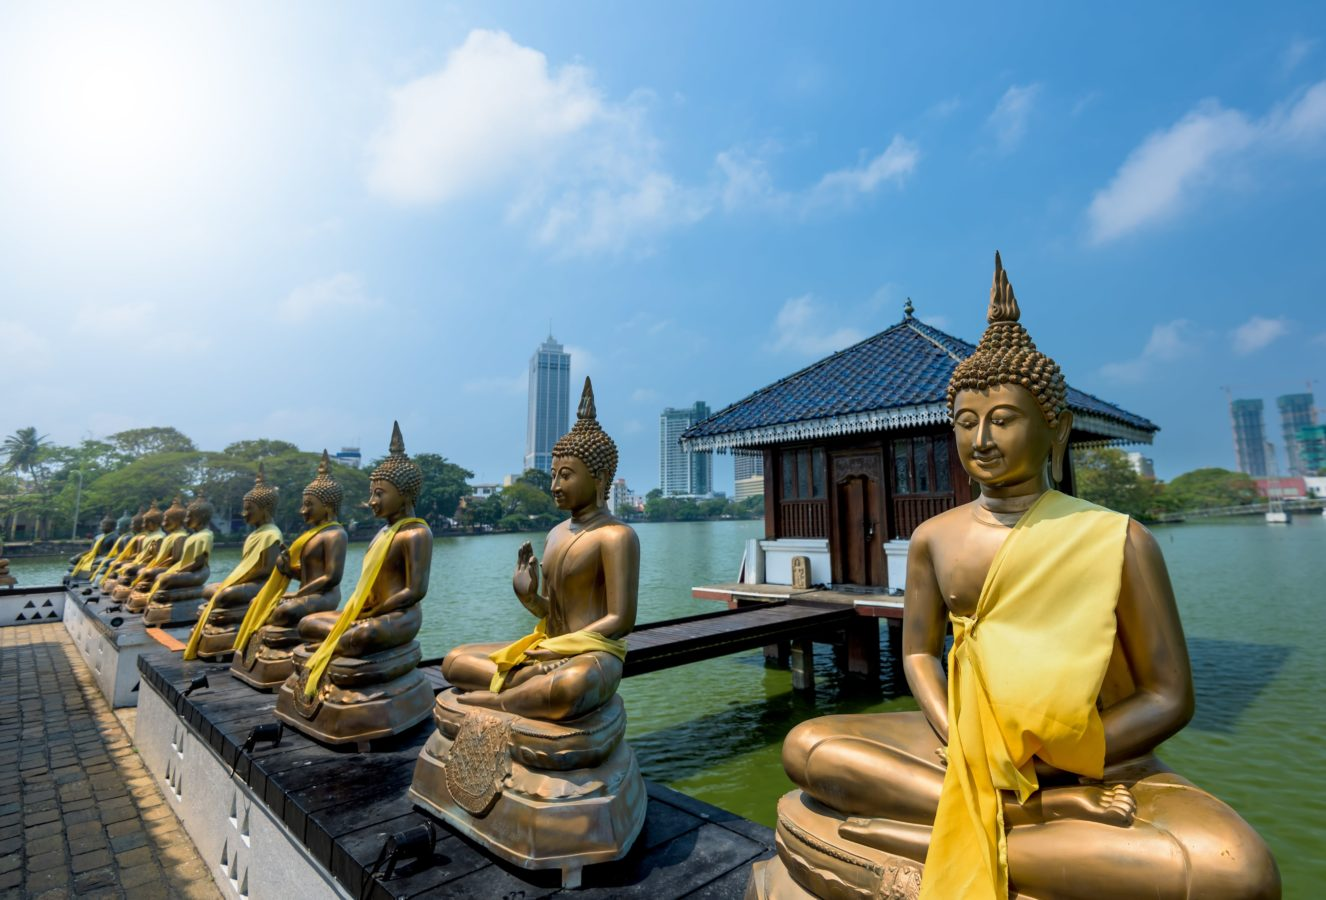 Sri Lanka guide: How fully vaccinated travellers can explore Colombo in 24 hours